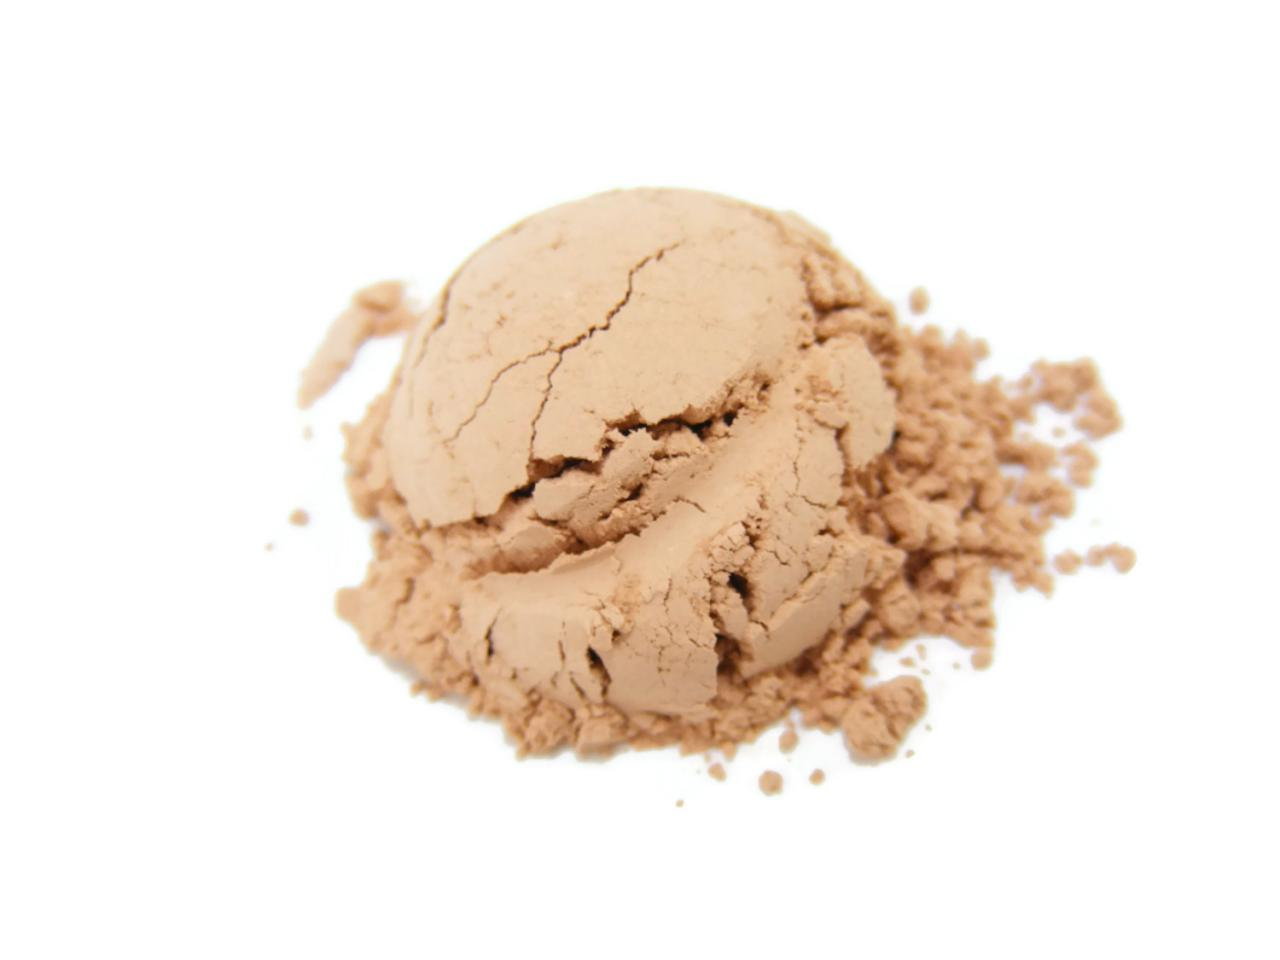 Mineral Foundation, Natural Makeup, Vegan Matte Foundation - Warm Beige - Medium